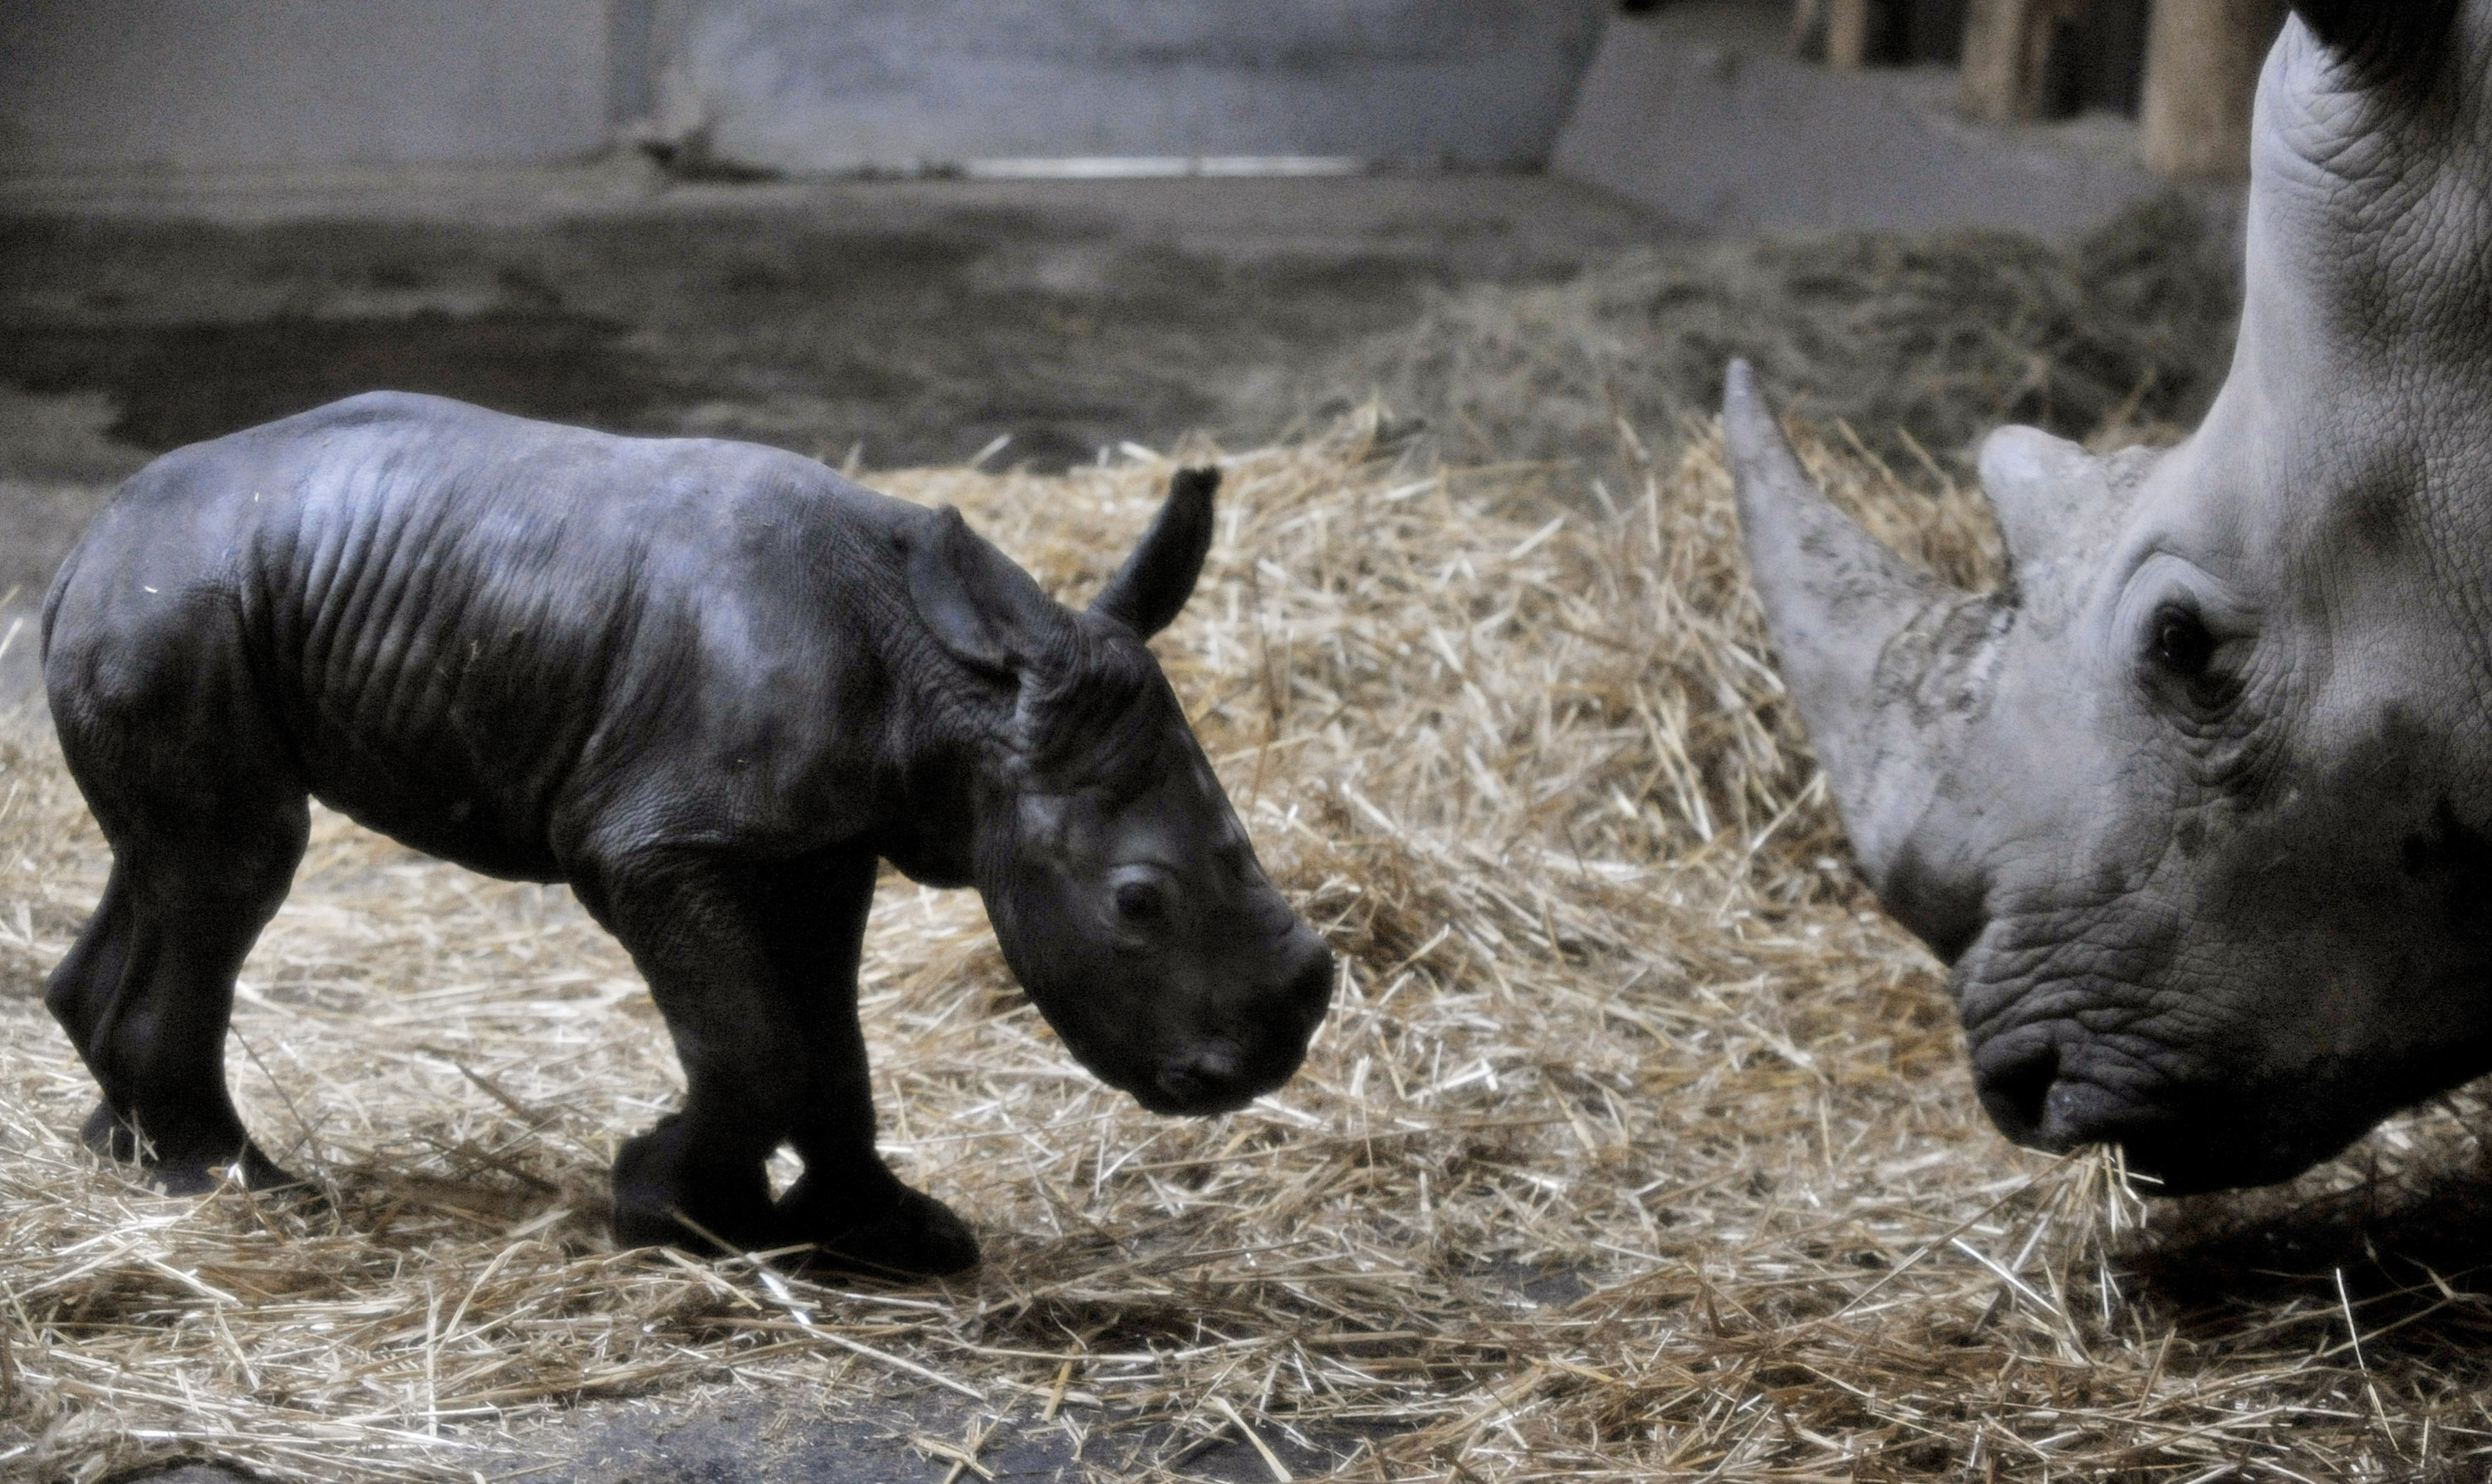 The white rhino baby and his mother in the Budapest Zoo. The rhino was conceived using artificial insemination and �cryopreserved� rhino sperm. (Bela Szandelszky)